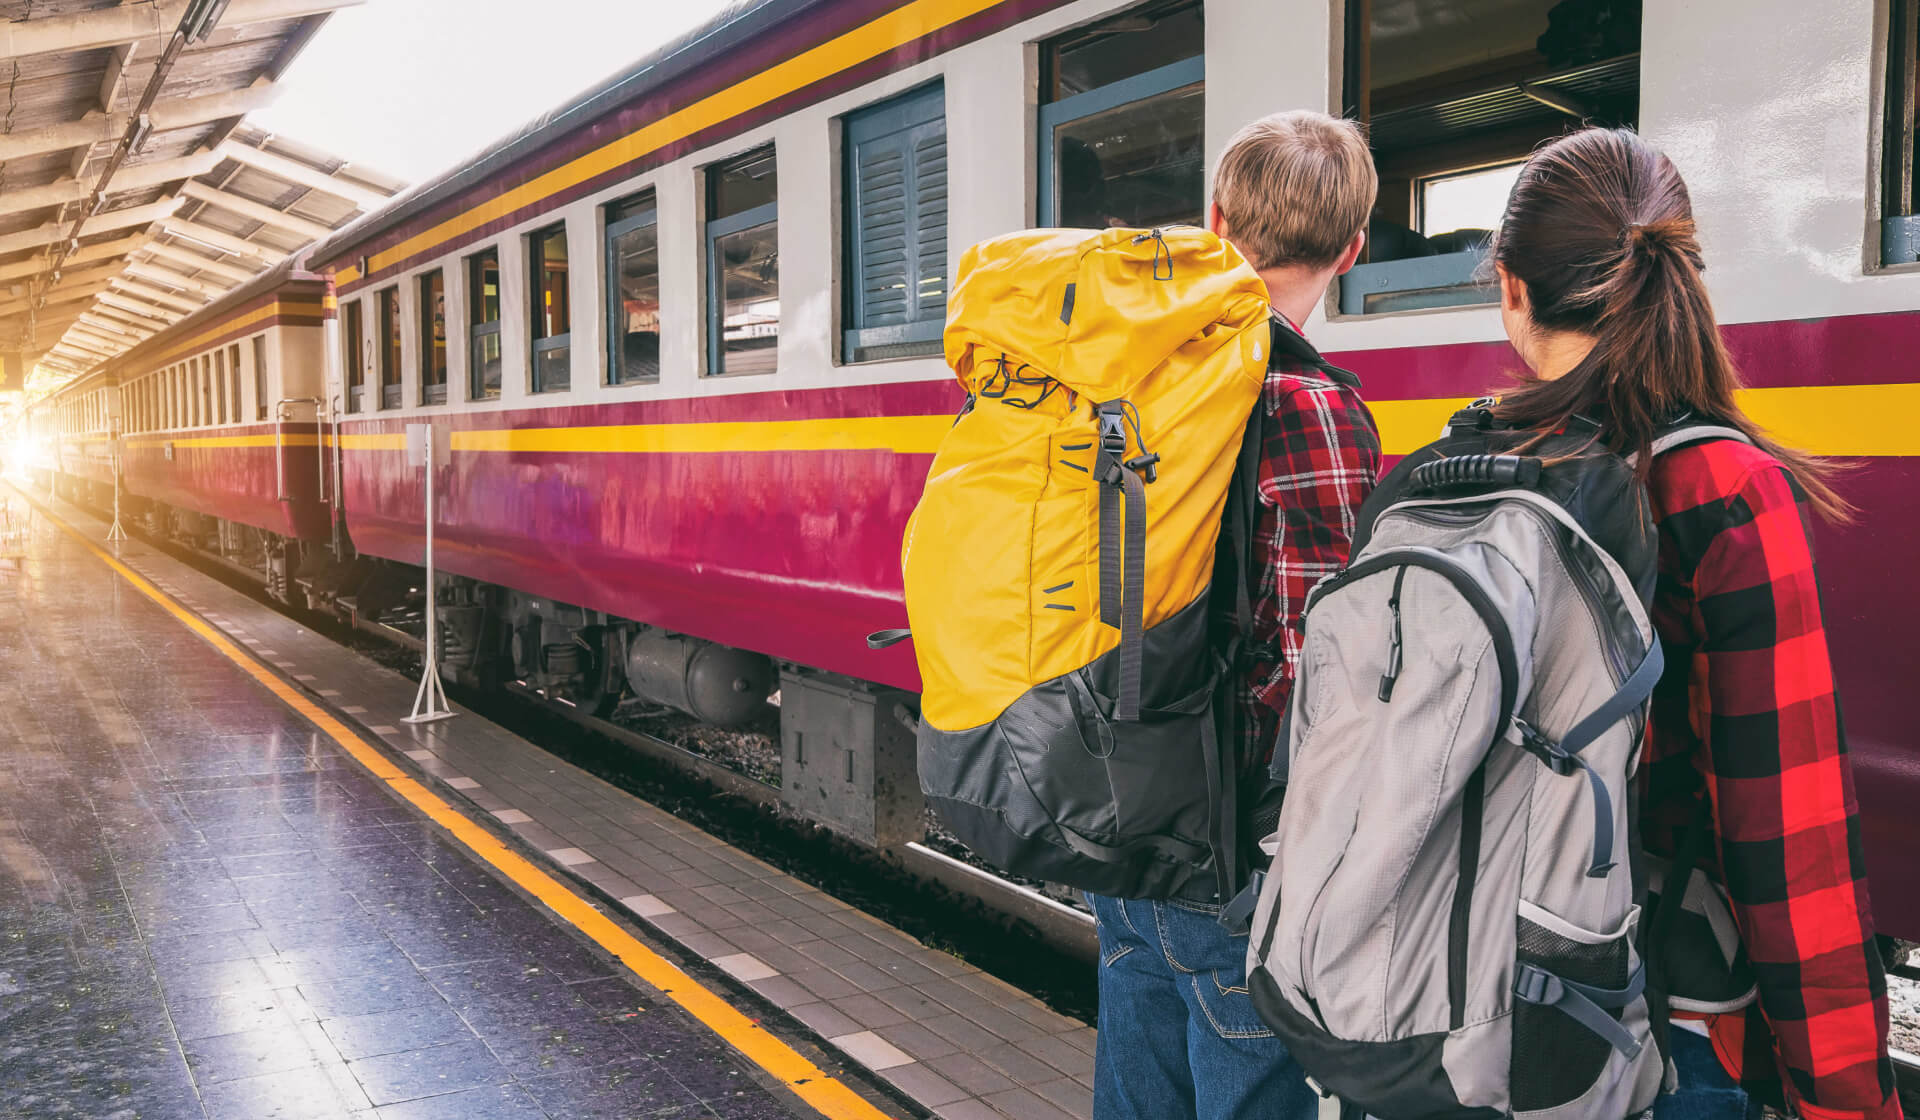 Backpacking couple with yellow and gray backpacks at a train station waiting standing in front of a train pulling in